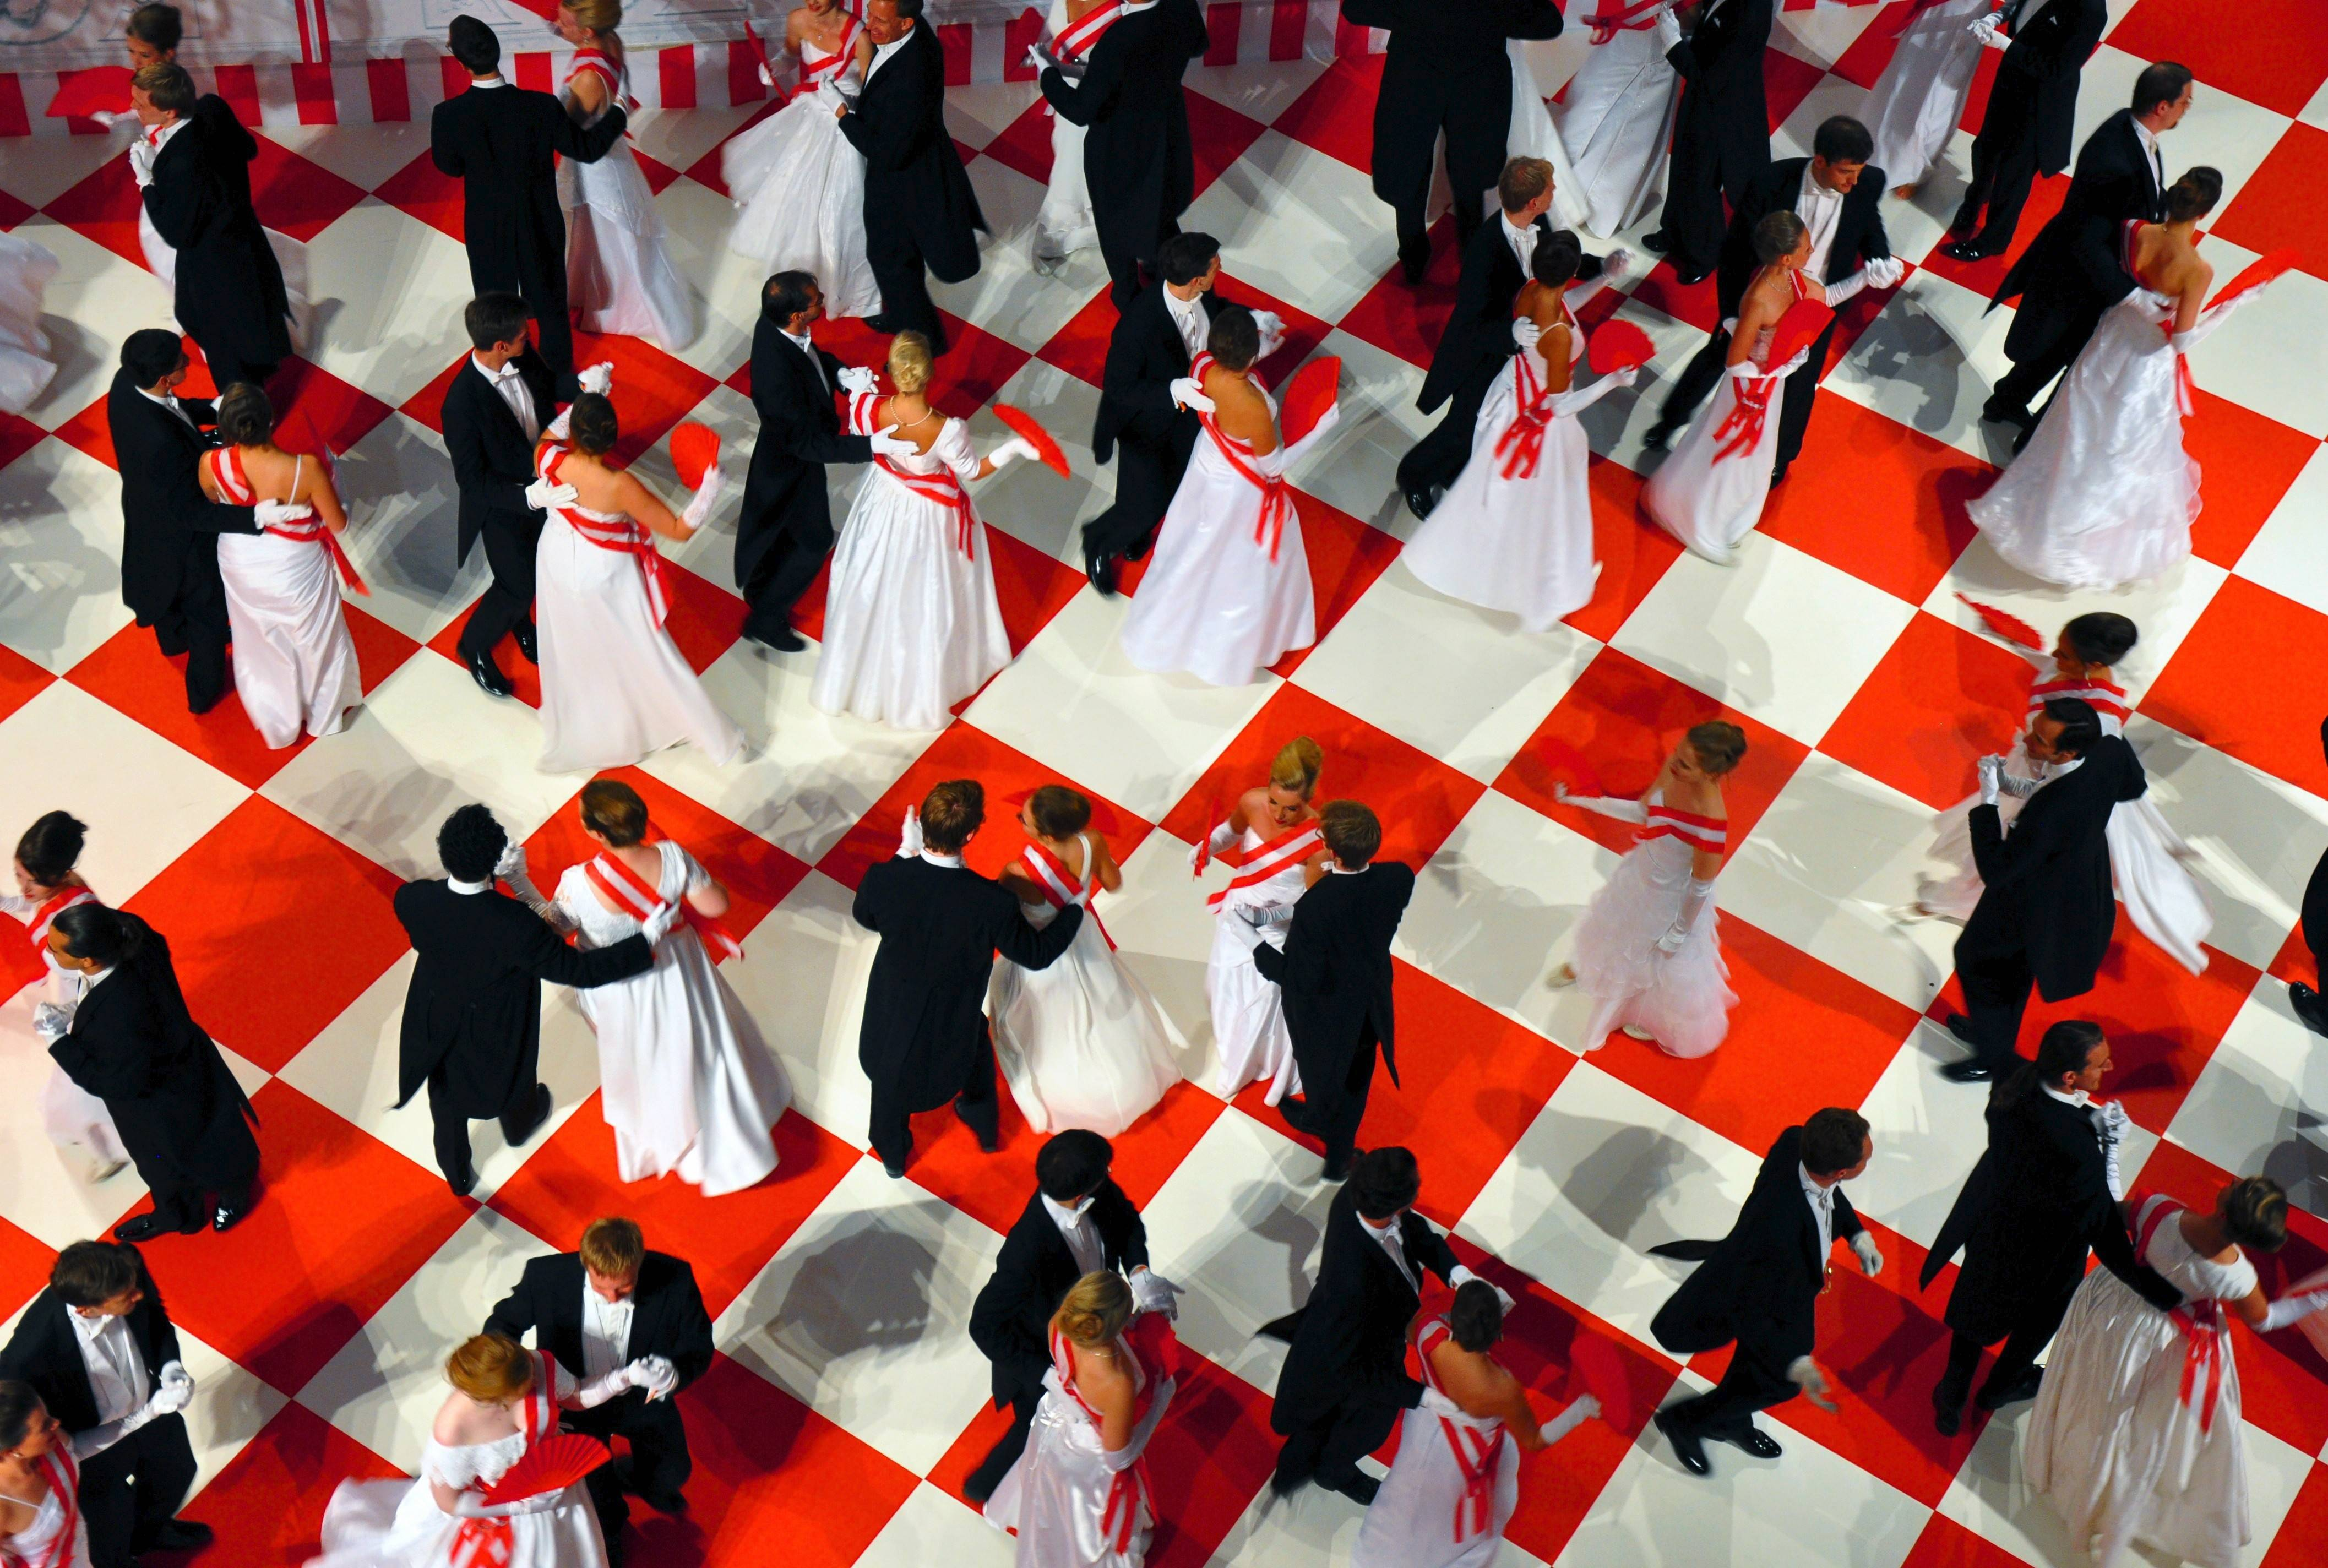 Debutantes and their escorts twirl in a waltz around the dance floor inside the Spanish Riding School during the Fete Imperiale ball in Vienna, Austria.